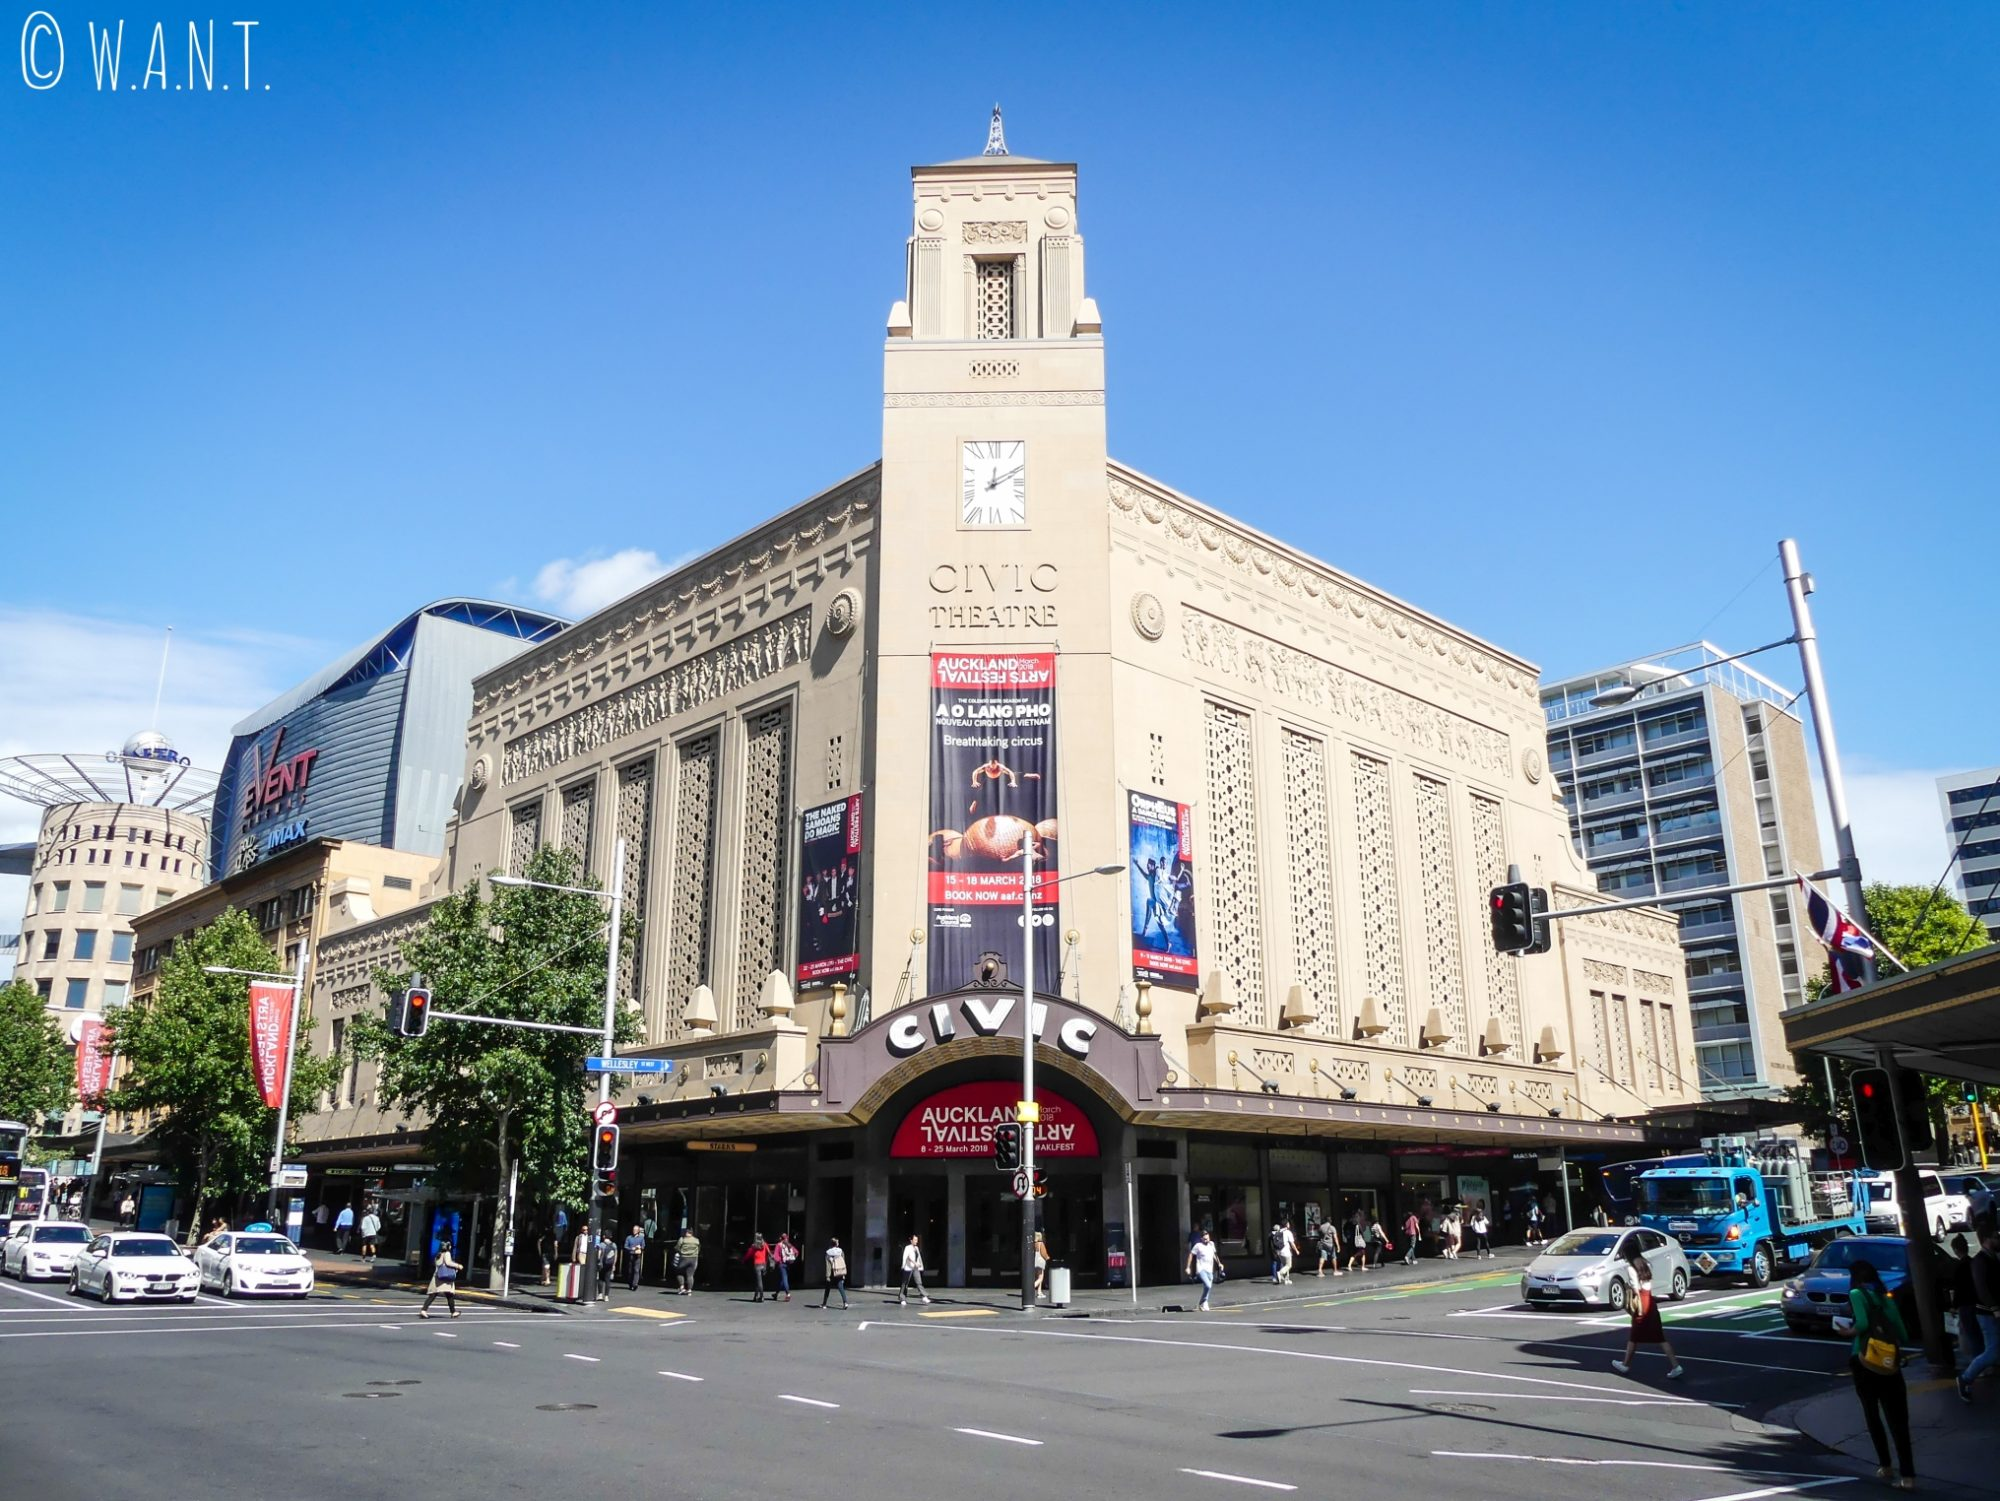 Le Civic Theatre de Auckland